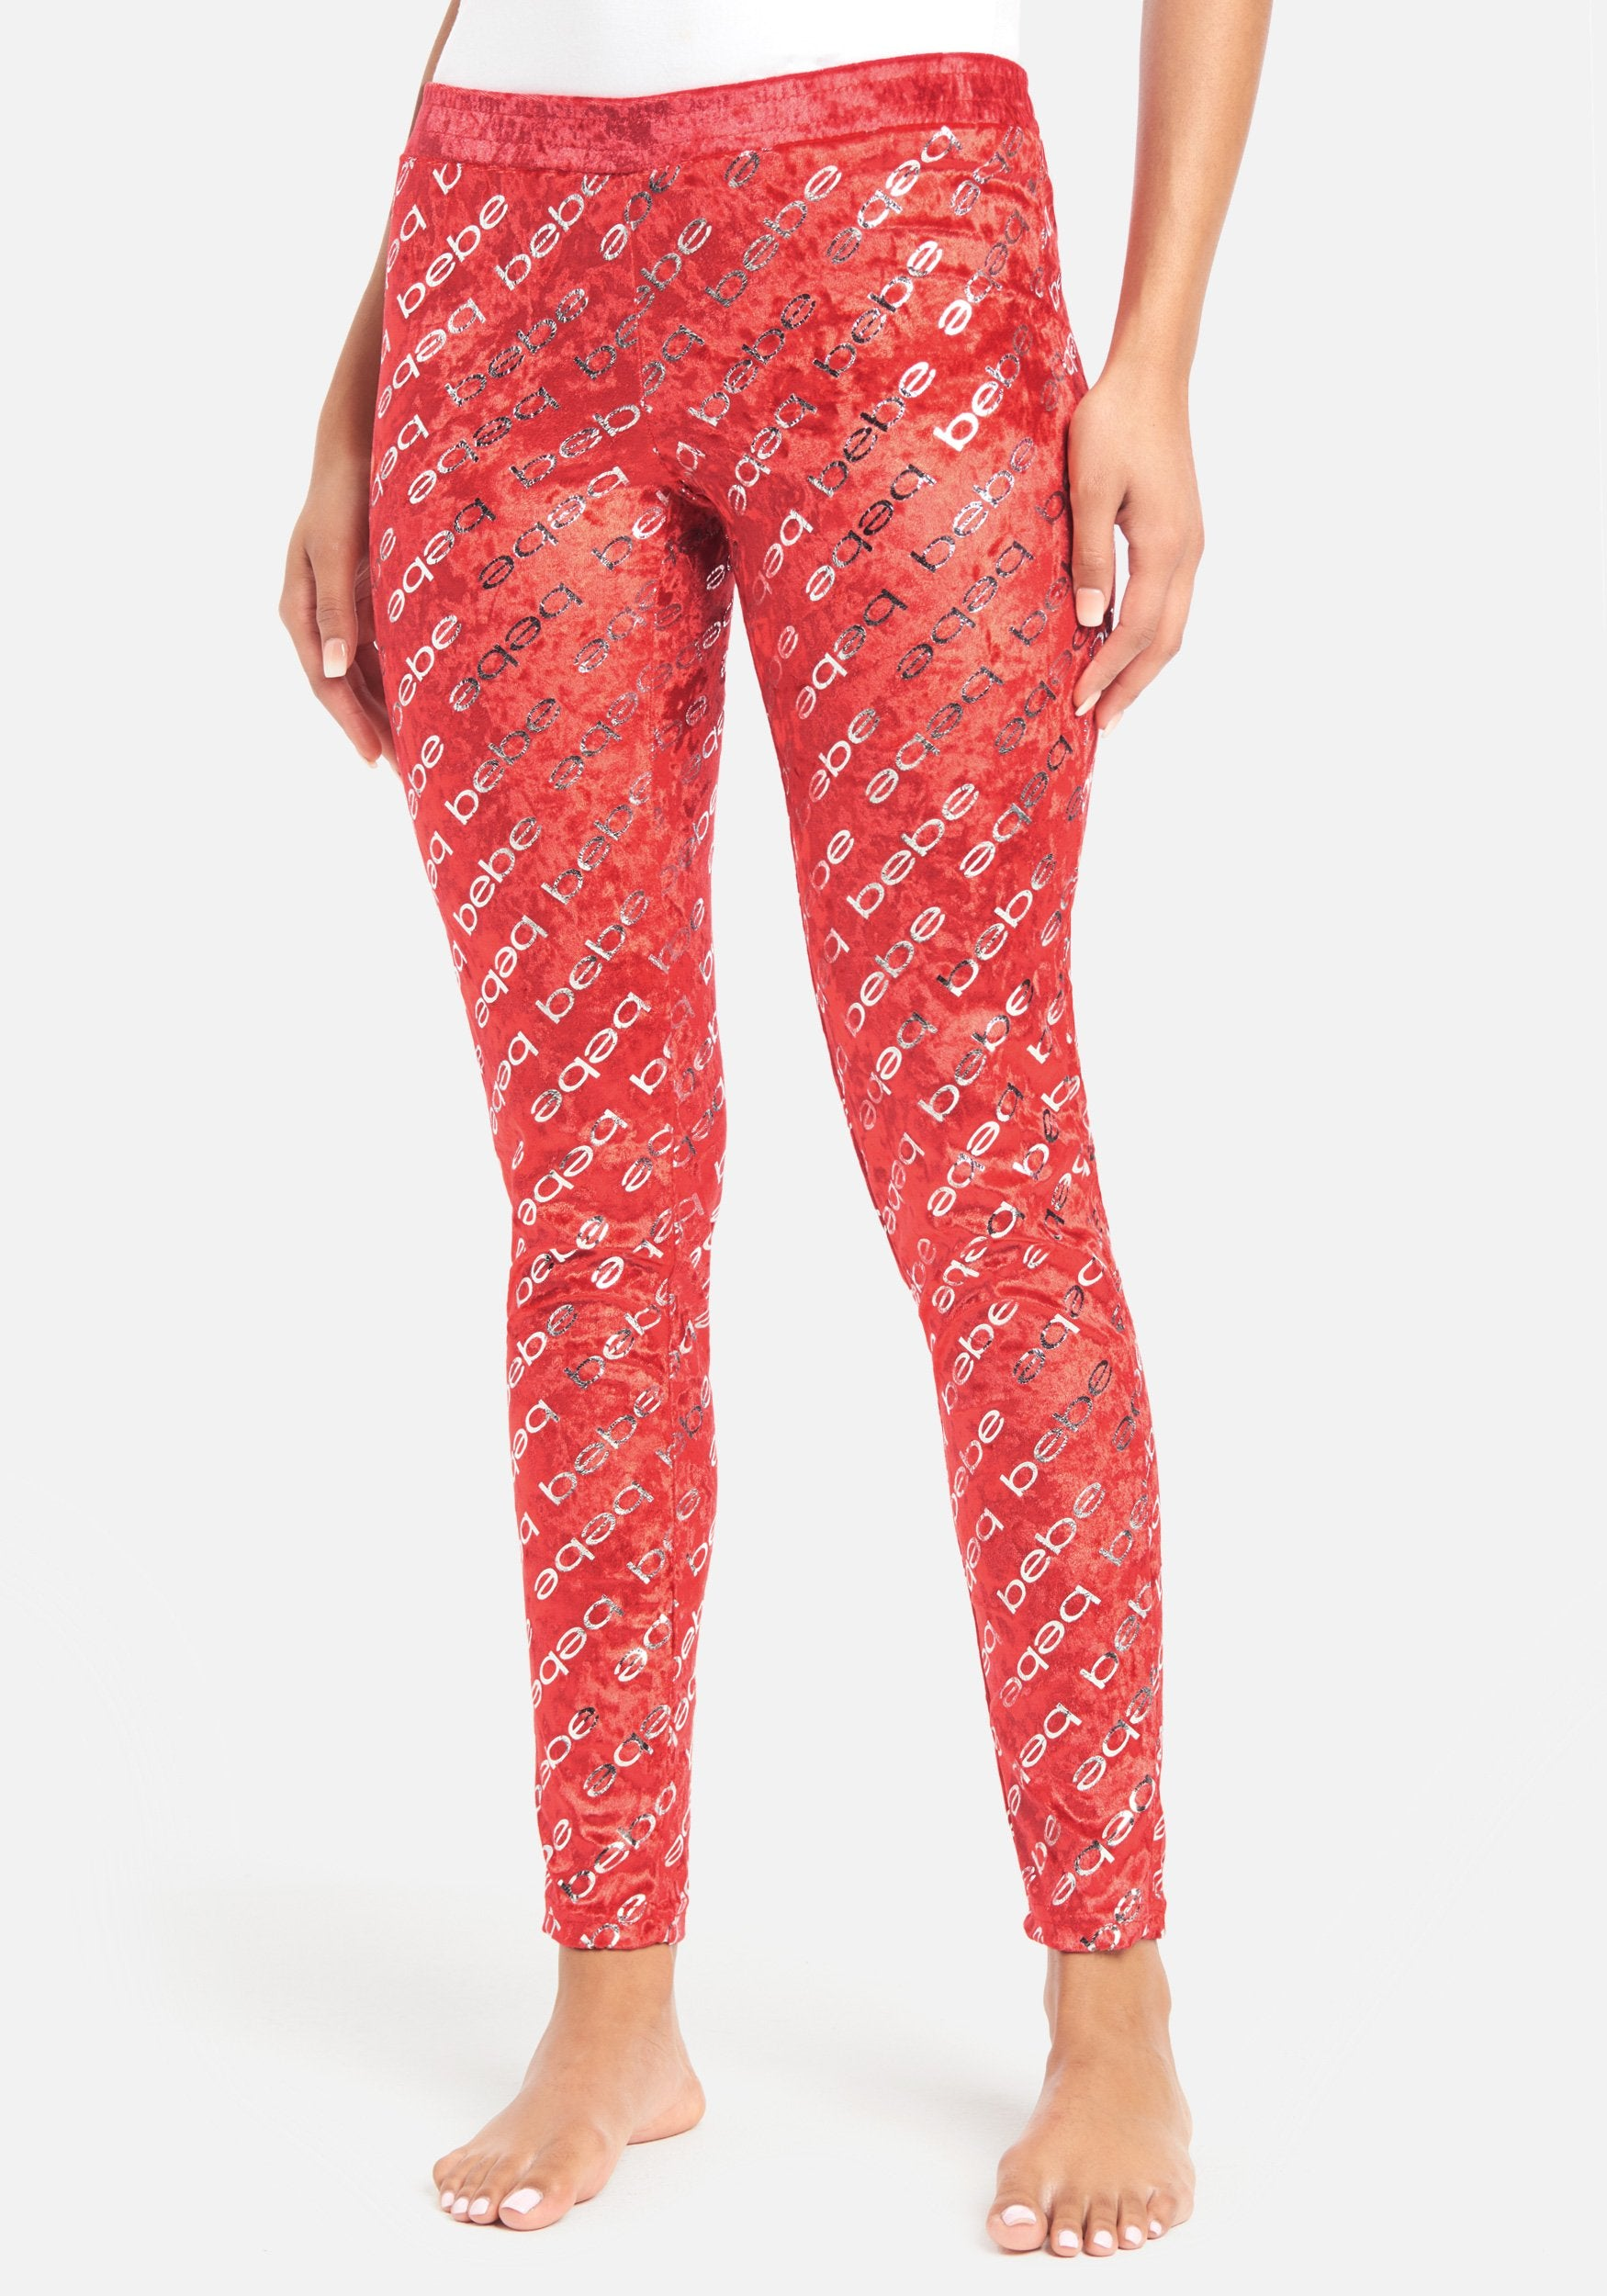 Women's Allover Bebe Lounge Pant, Size Small in Red Polyester